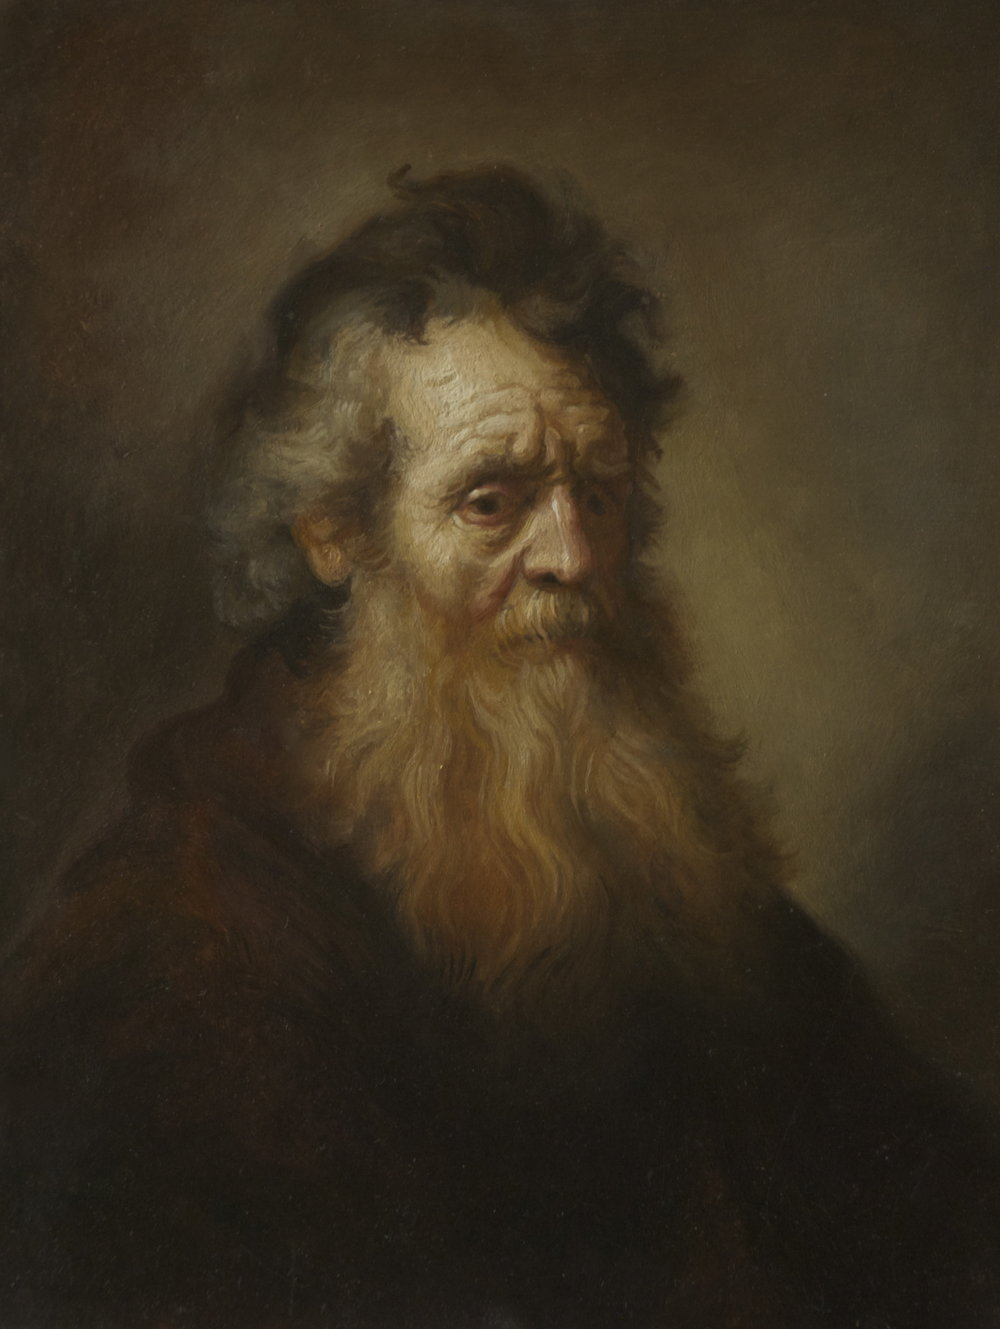 PORTRAIT OF AN OLD MAN, AFTER REMBRANDT